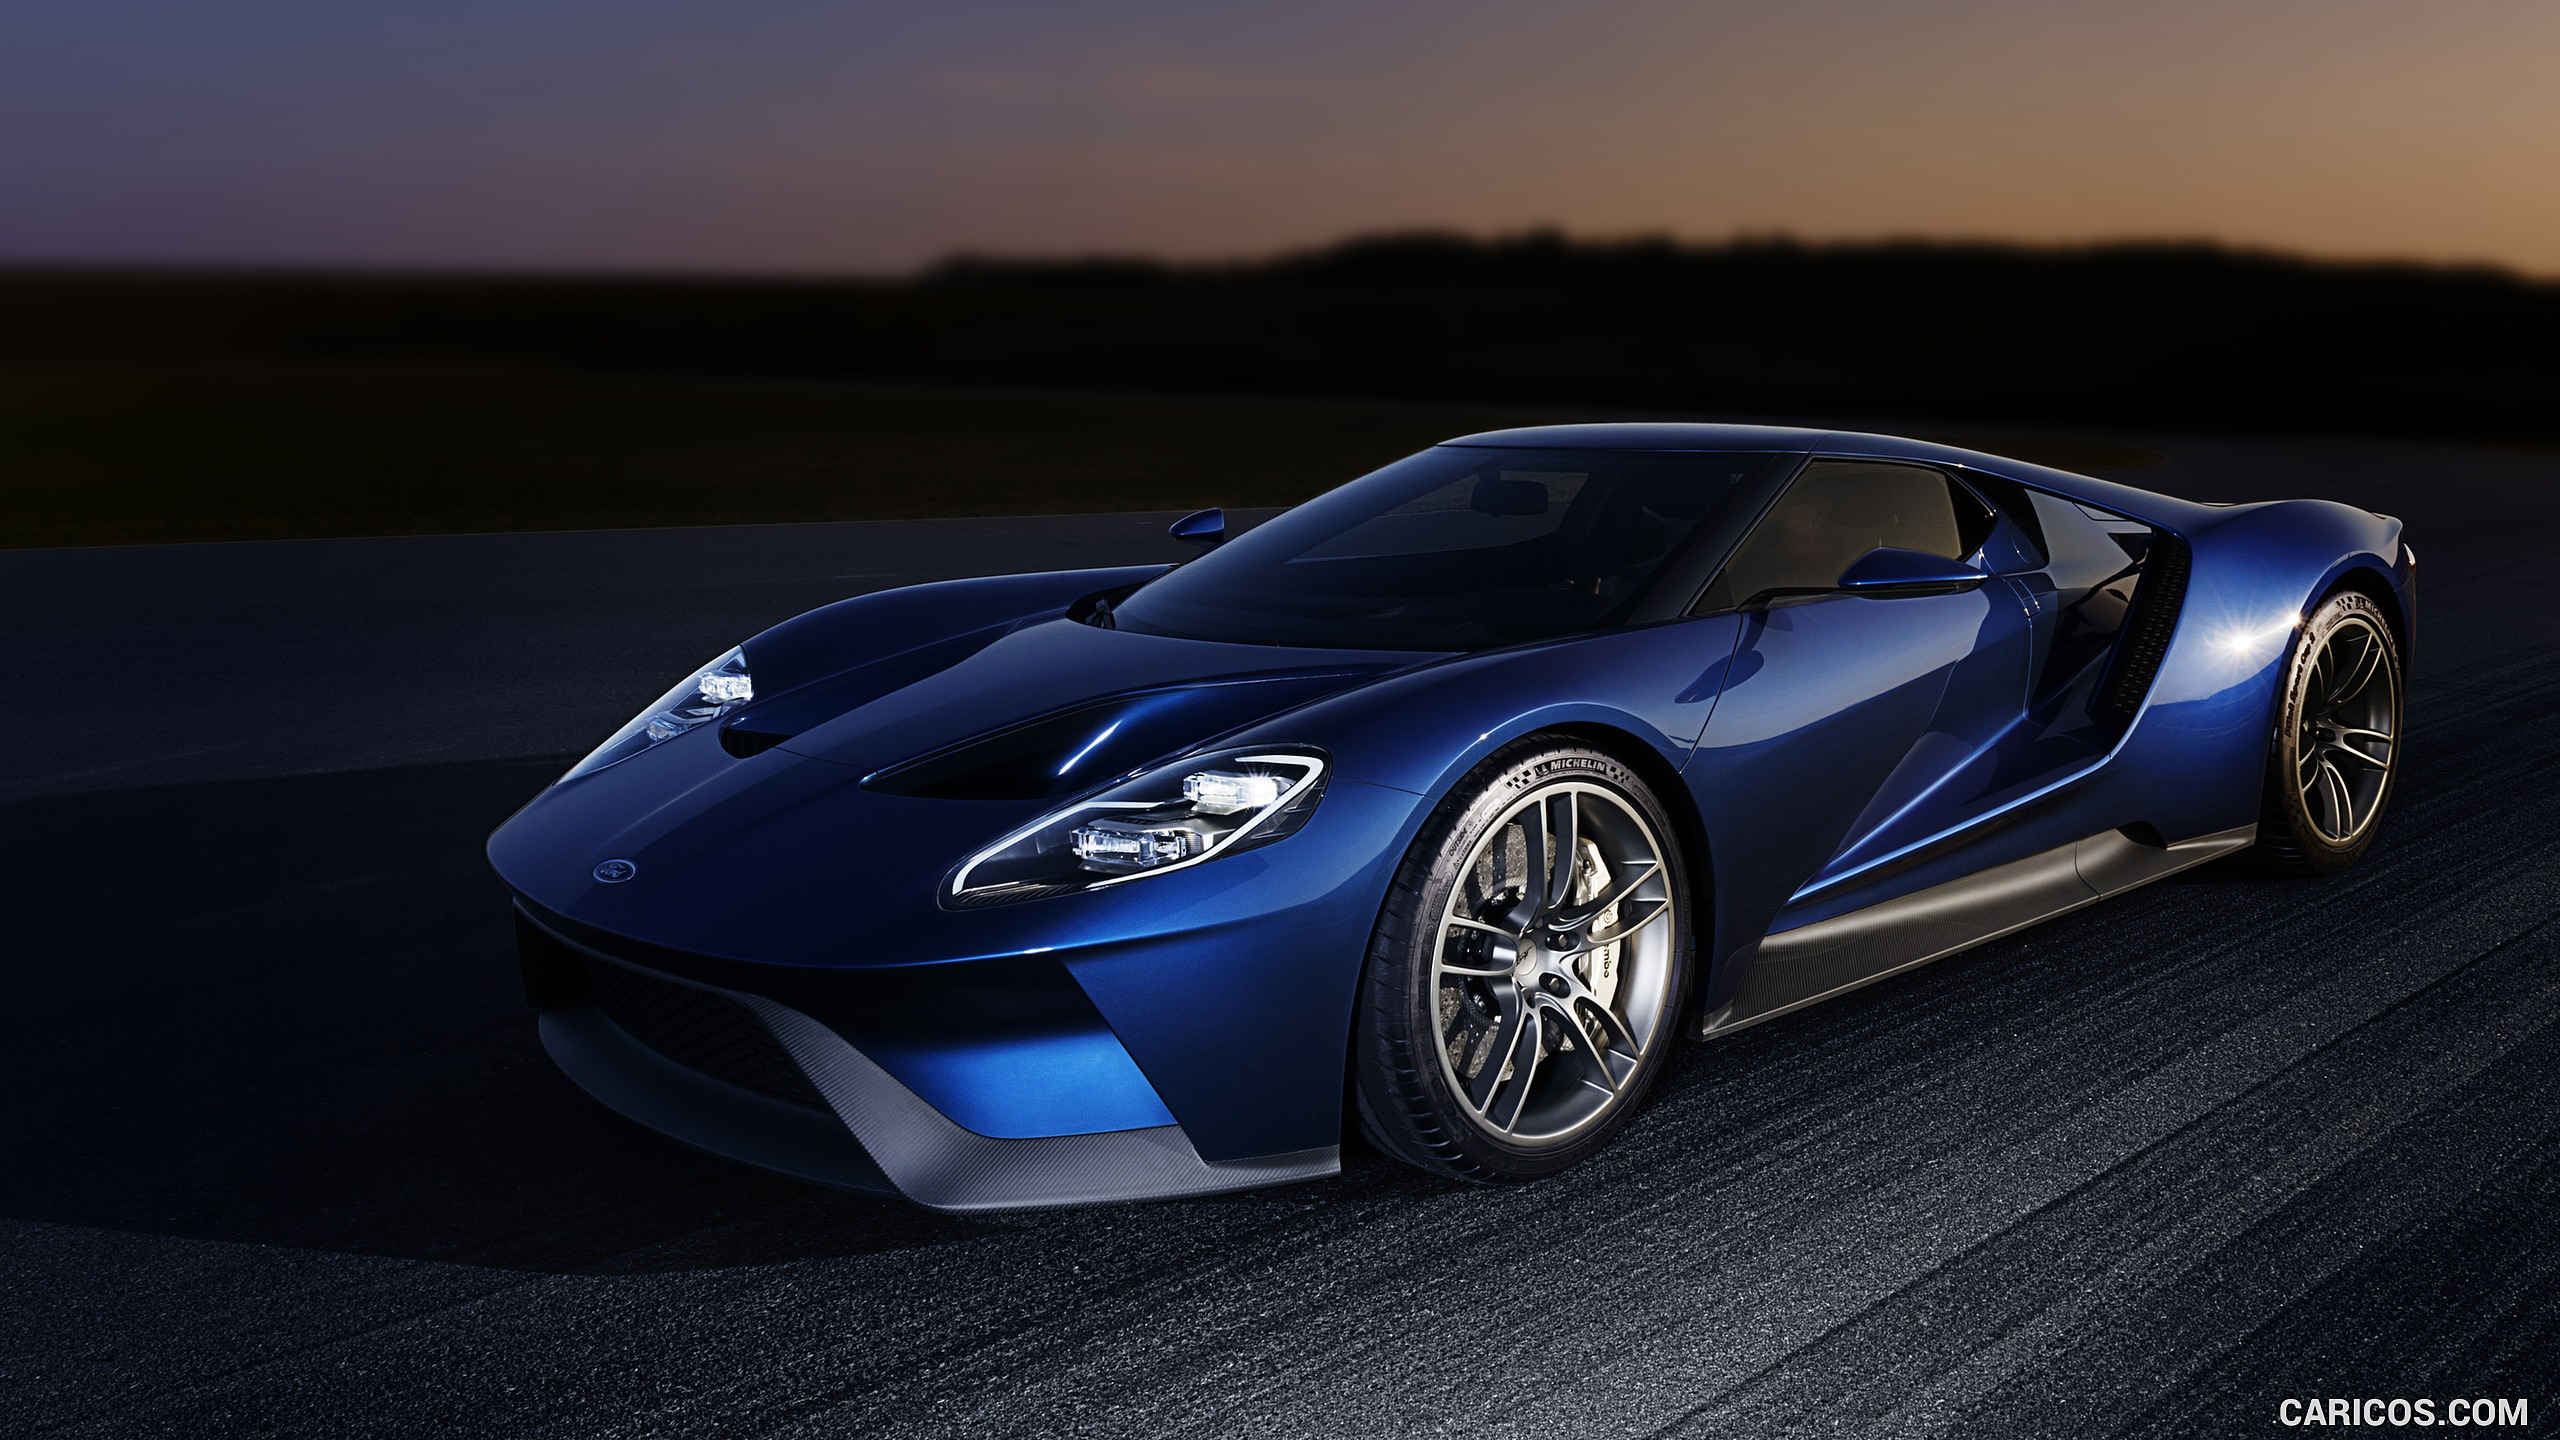 29 Ford Gt 2017 Wallpapers On Wallpapersafari